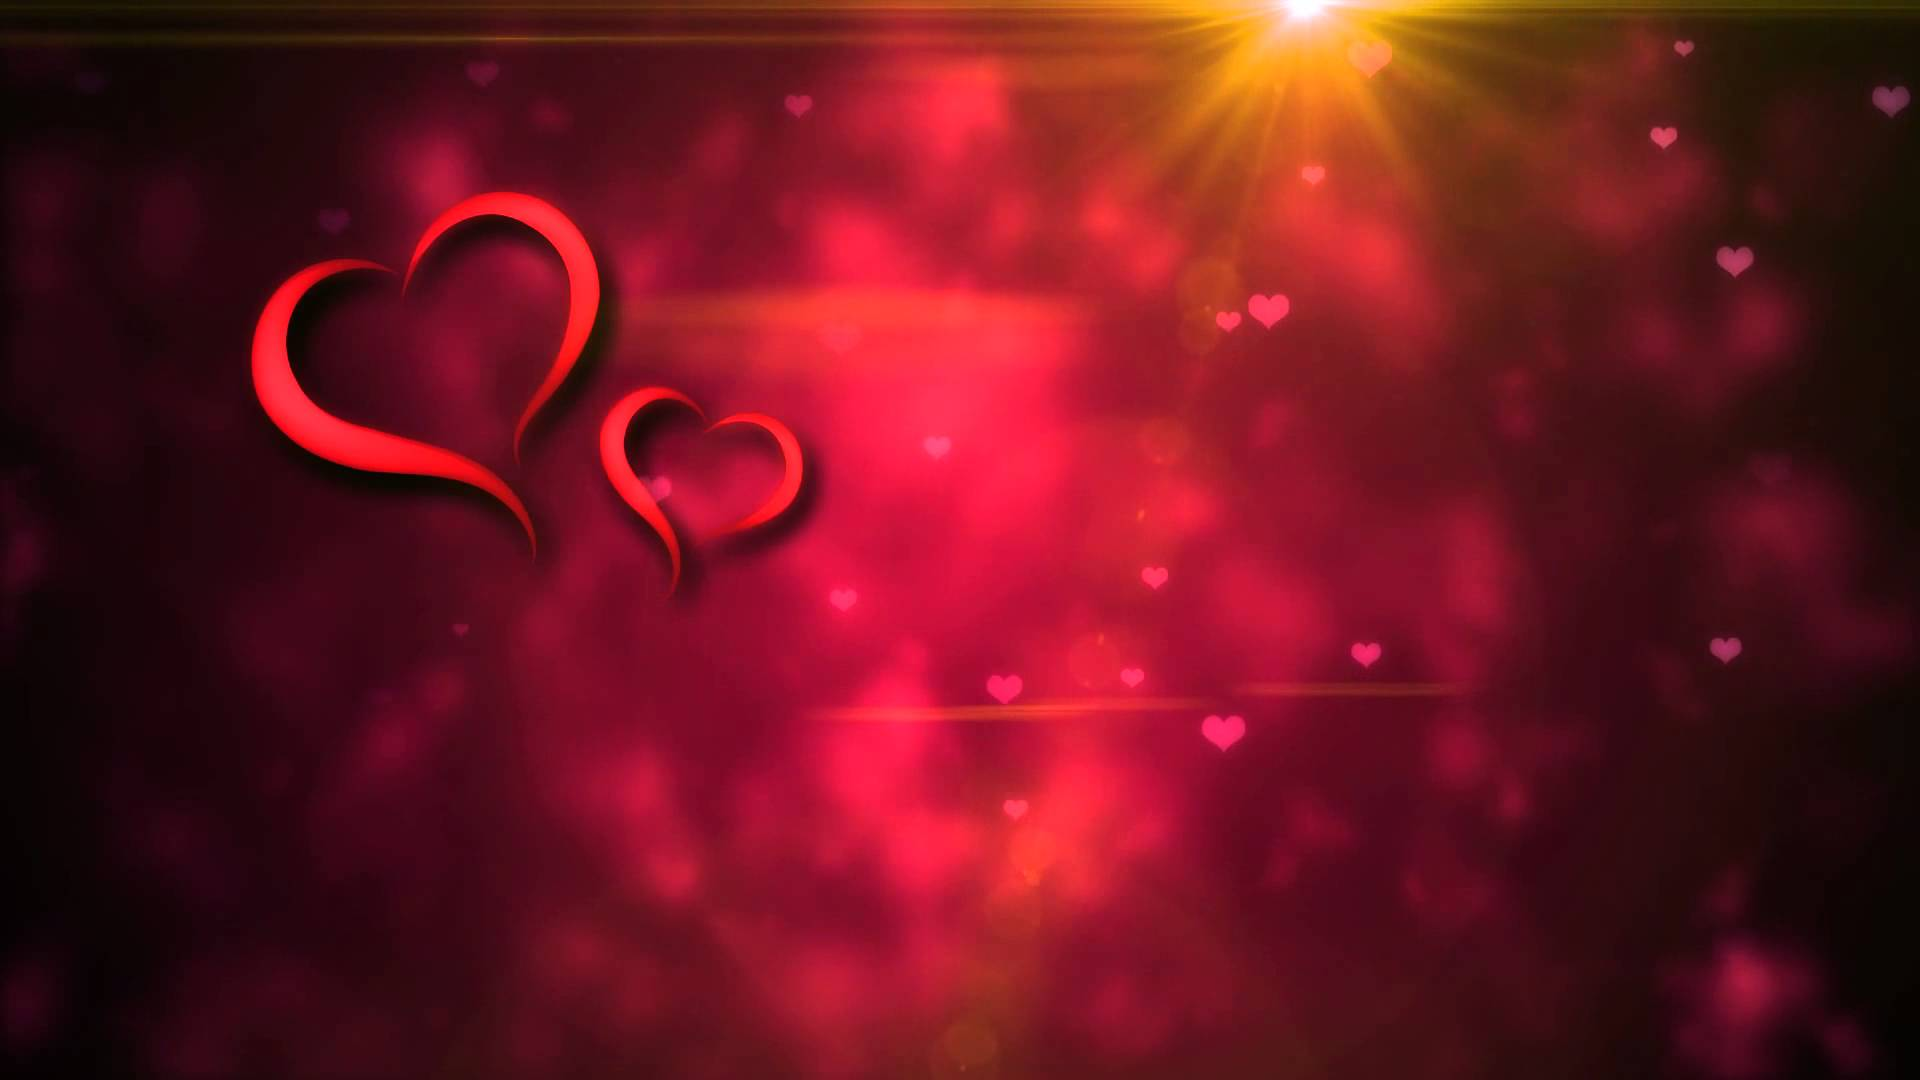 Love Wallpaper Full Hd Quality : Hd Wedding Backgrounds - WallpaperSafari